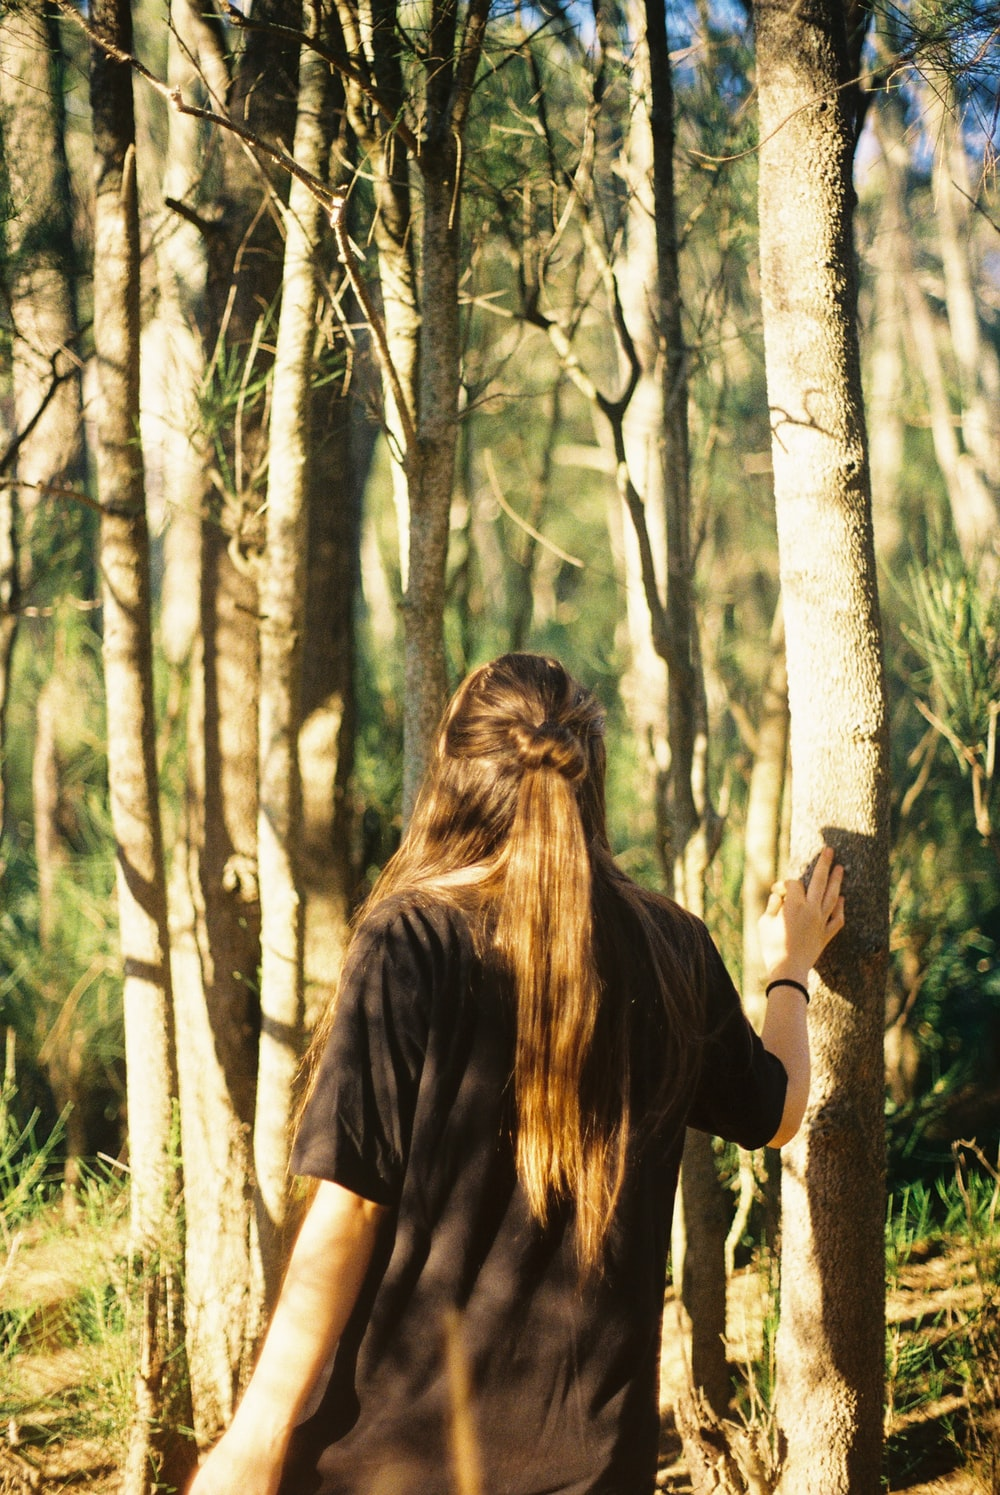 person standing near trees